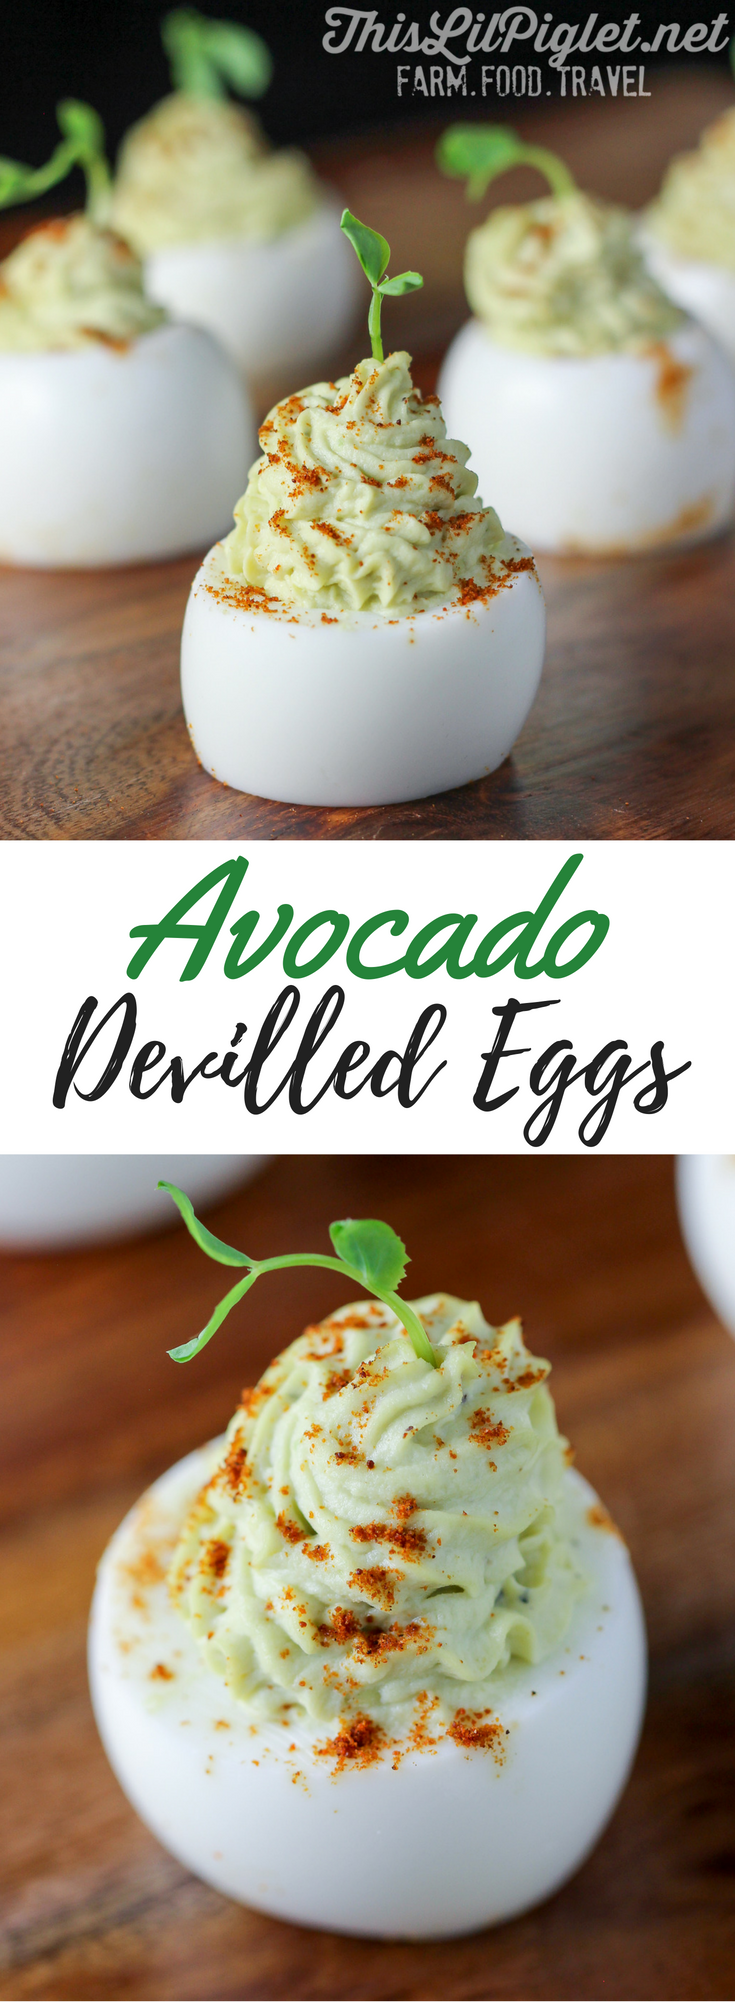 Avocado Devilled Eggs // via @thislilpiglet